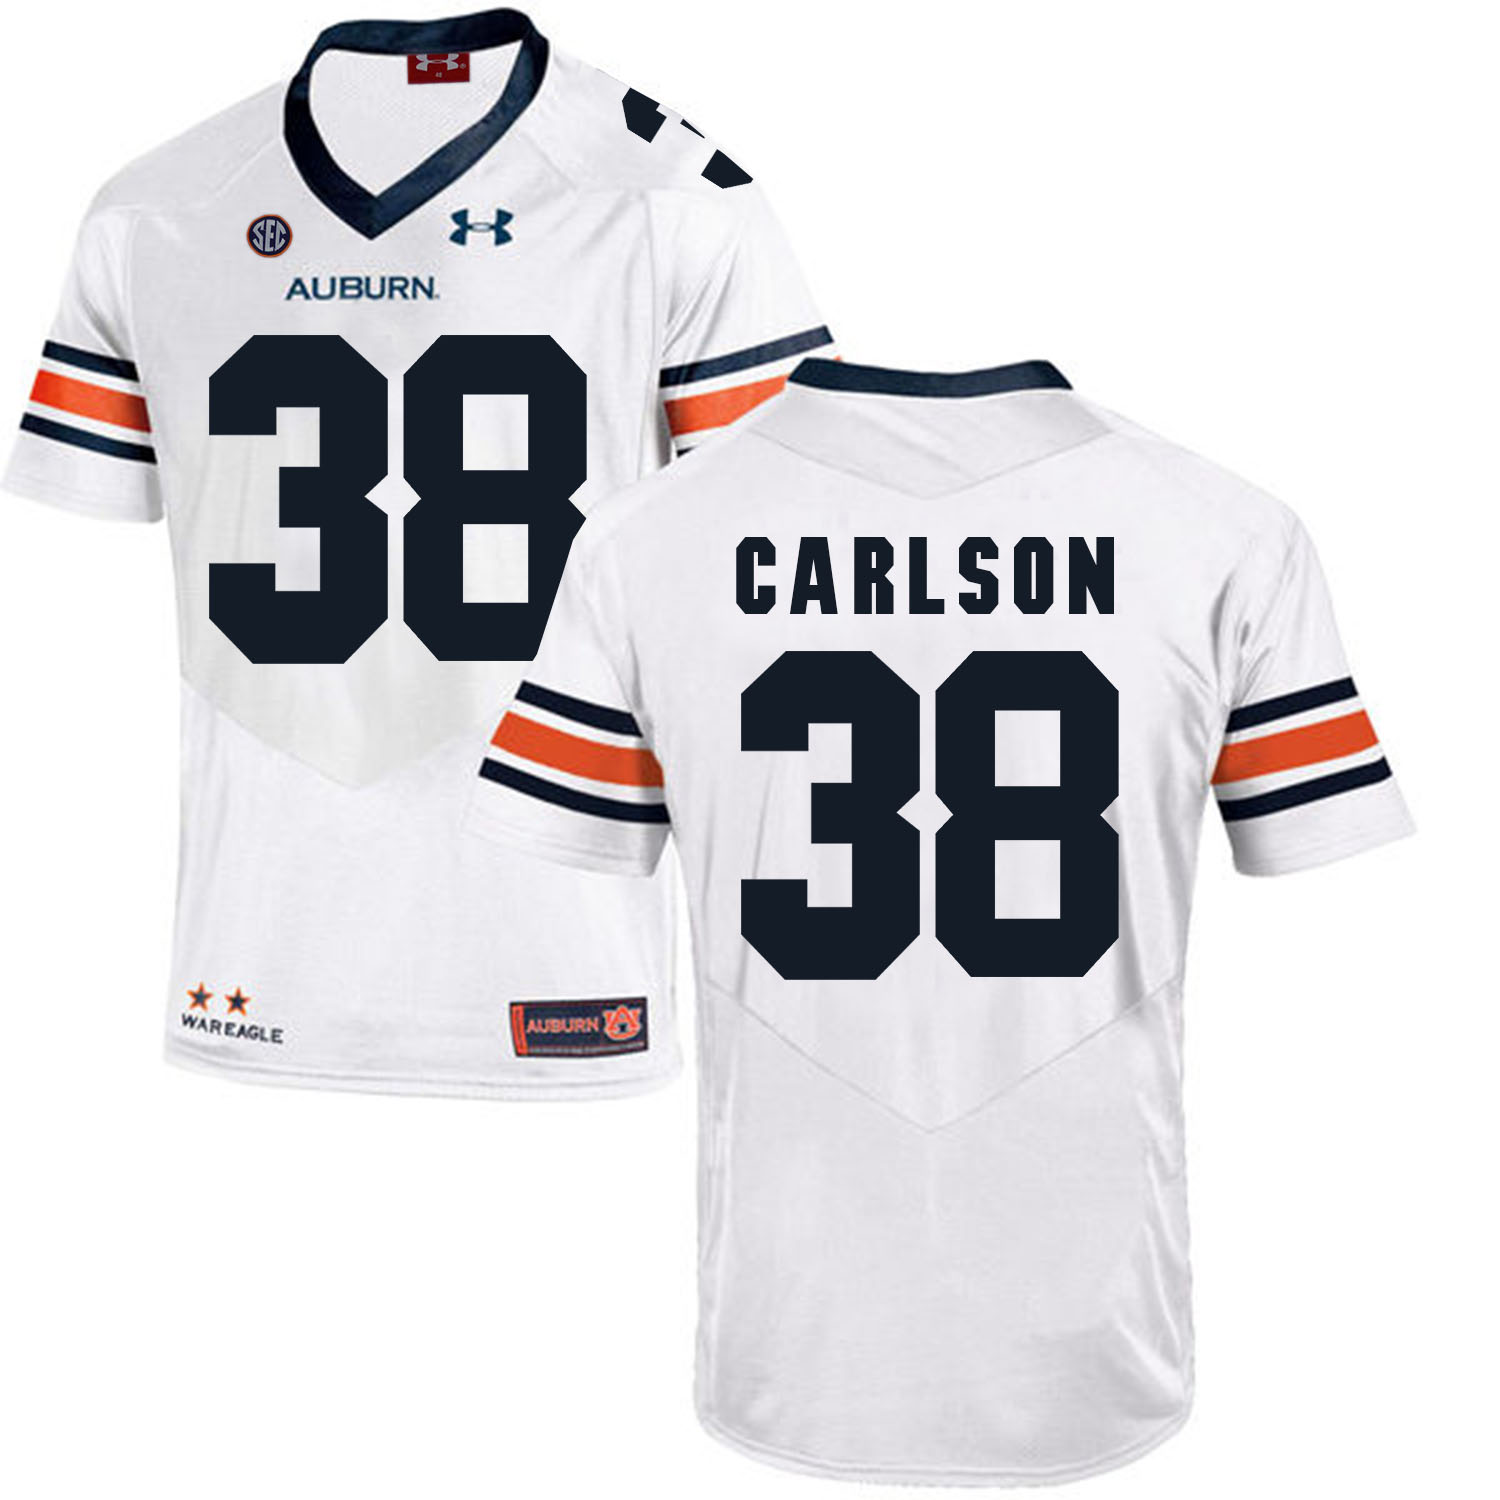 Auburn Tigers 38 Daniel Carlson White College Football Jersey